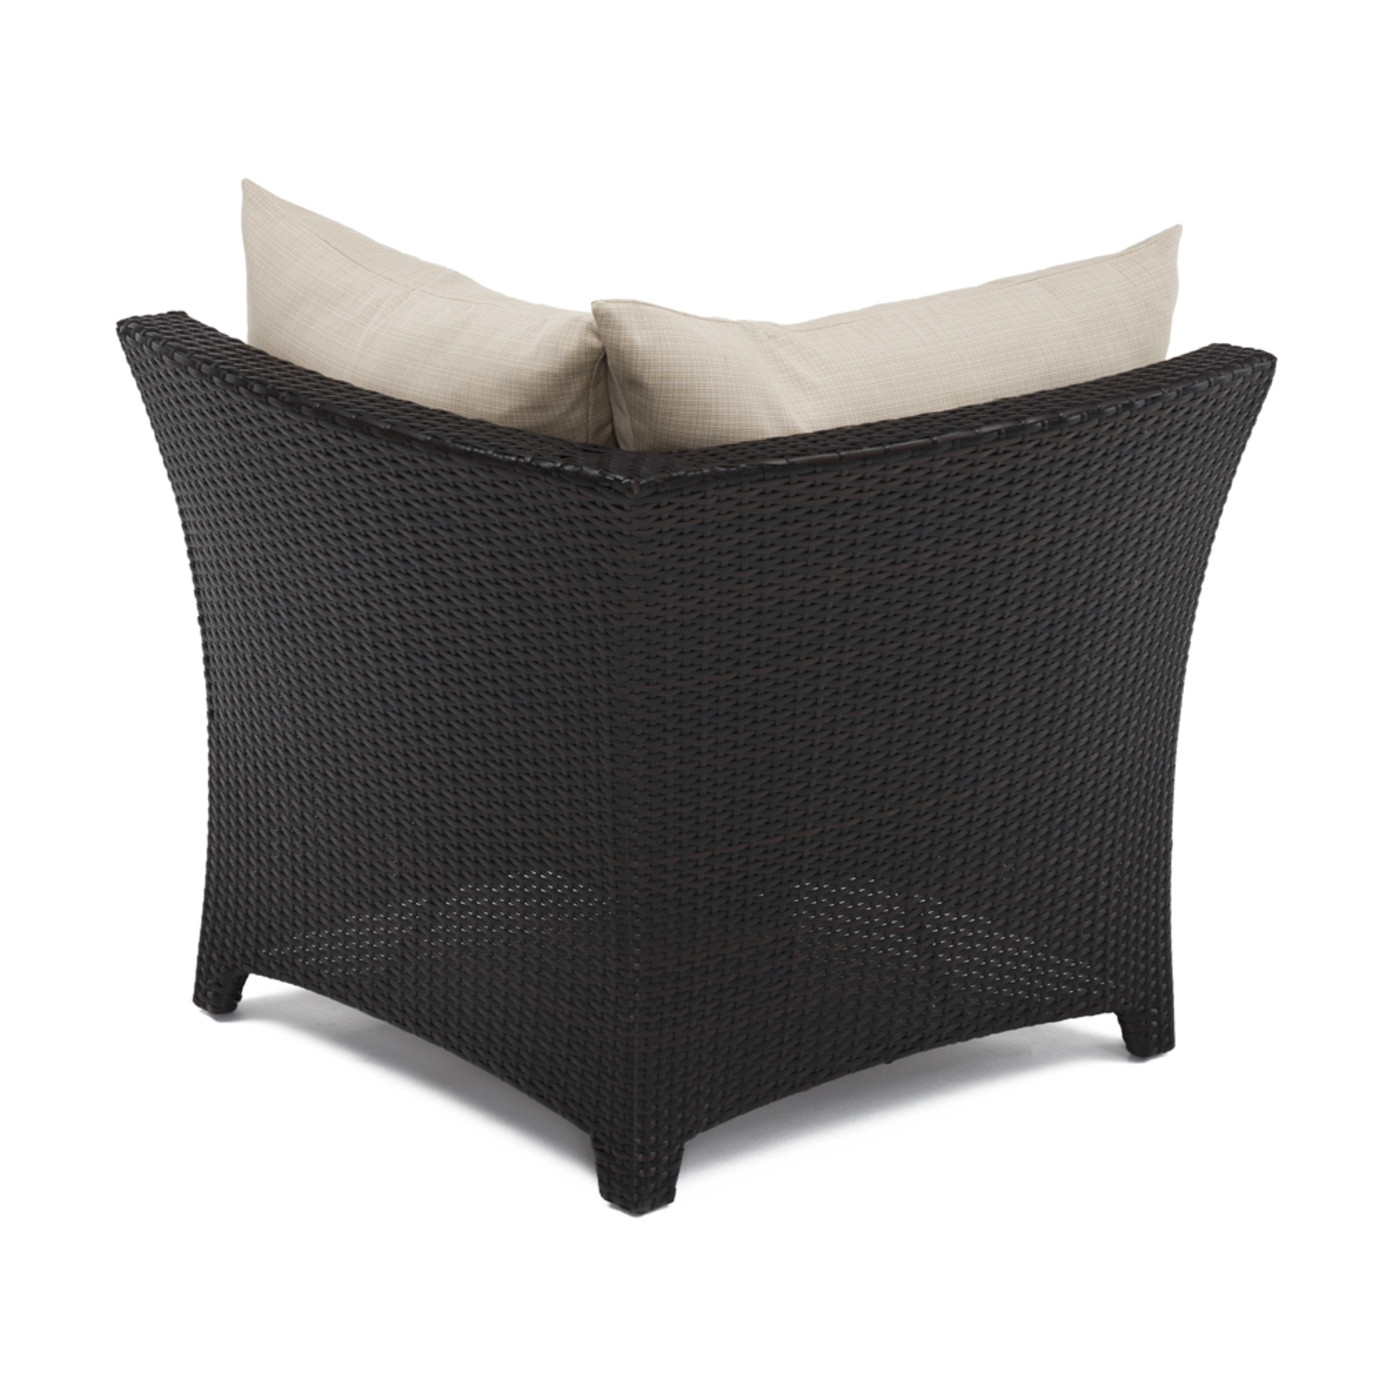 Deco™ Corner Chair - Slate Gray